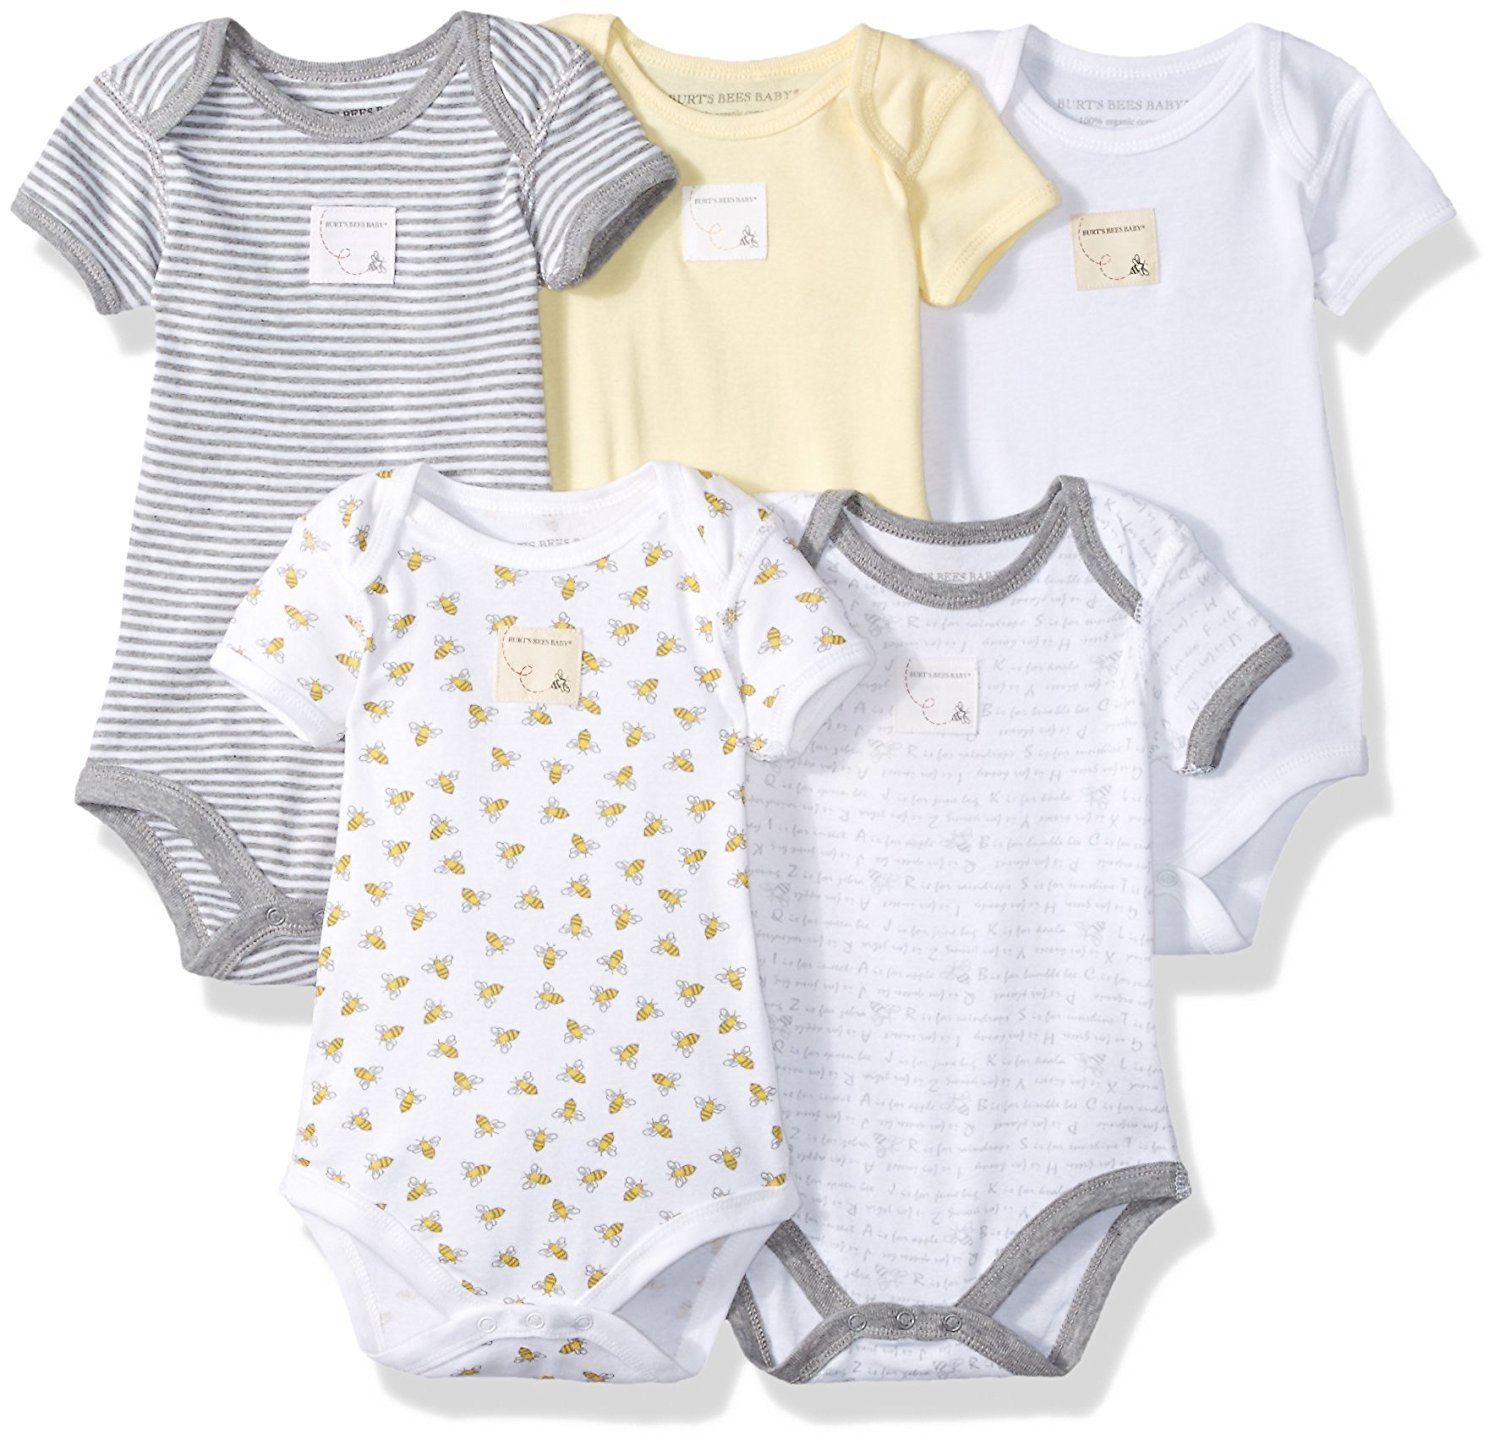 Burt's Bees Baby Unisex Baby Short Sleeve Bodysuits, Set of 5, 100% Organic Cotton